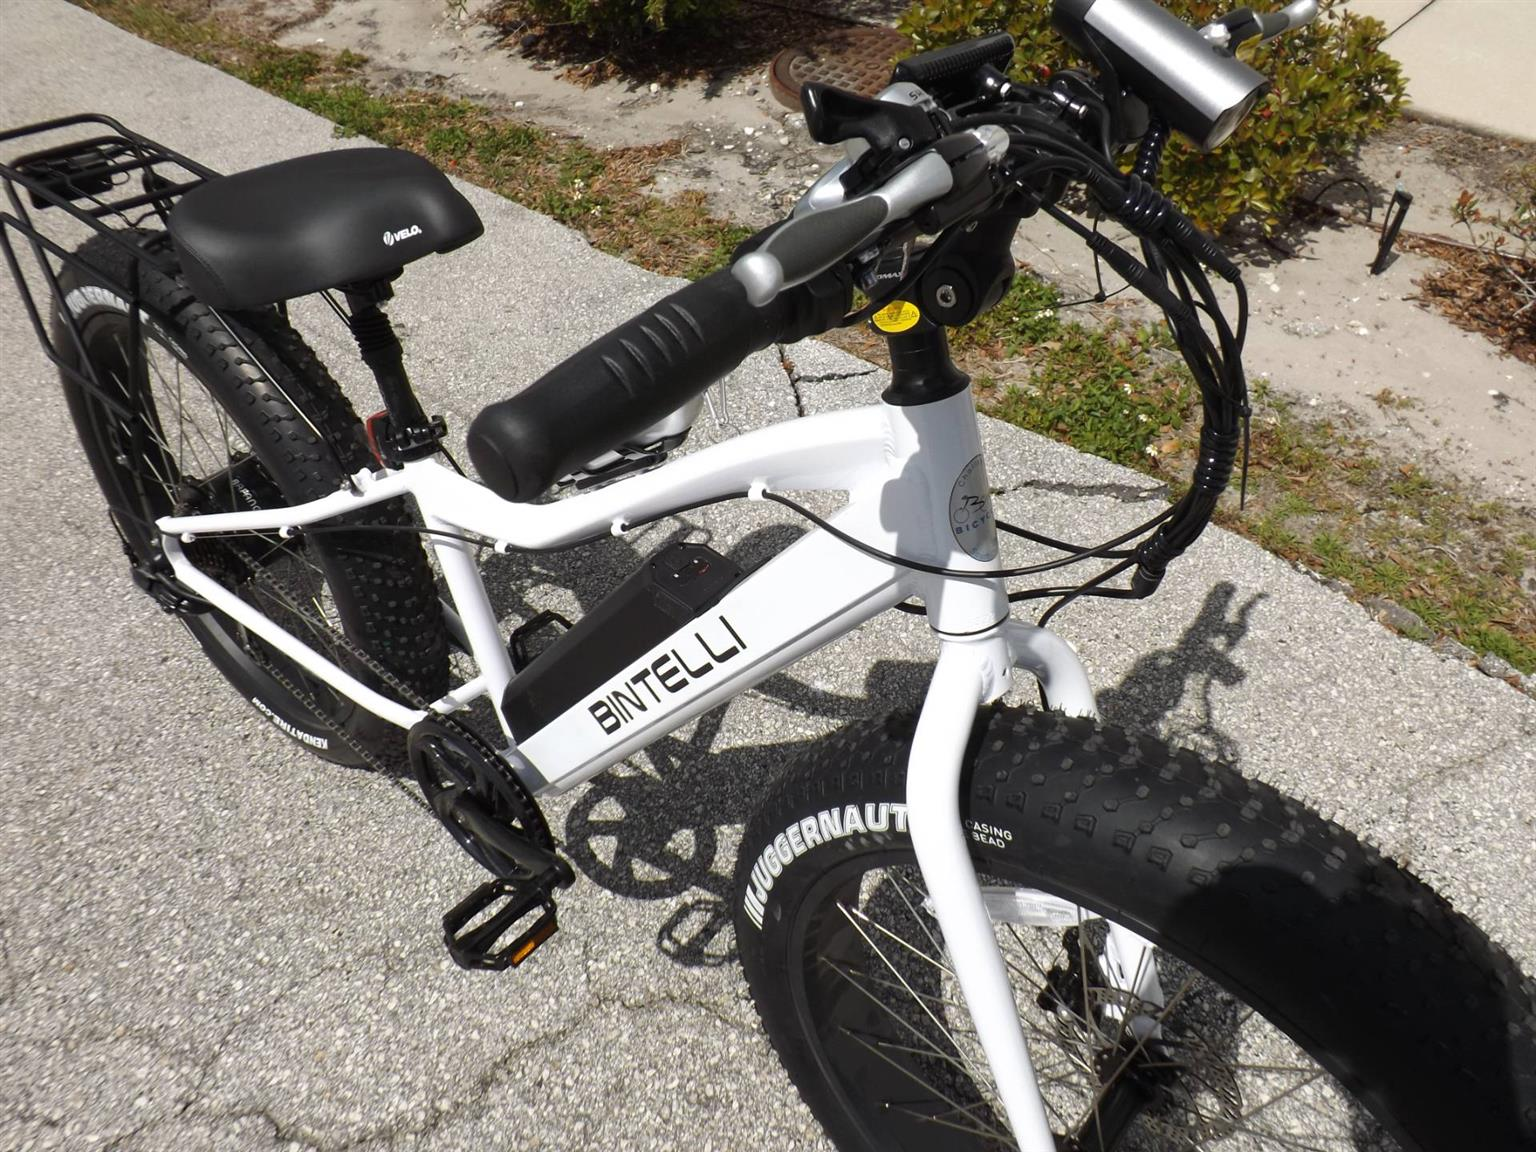 New Electric Bicycle • Electric Bicycle Fat Bike